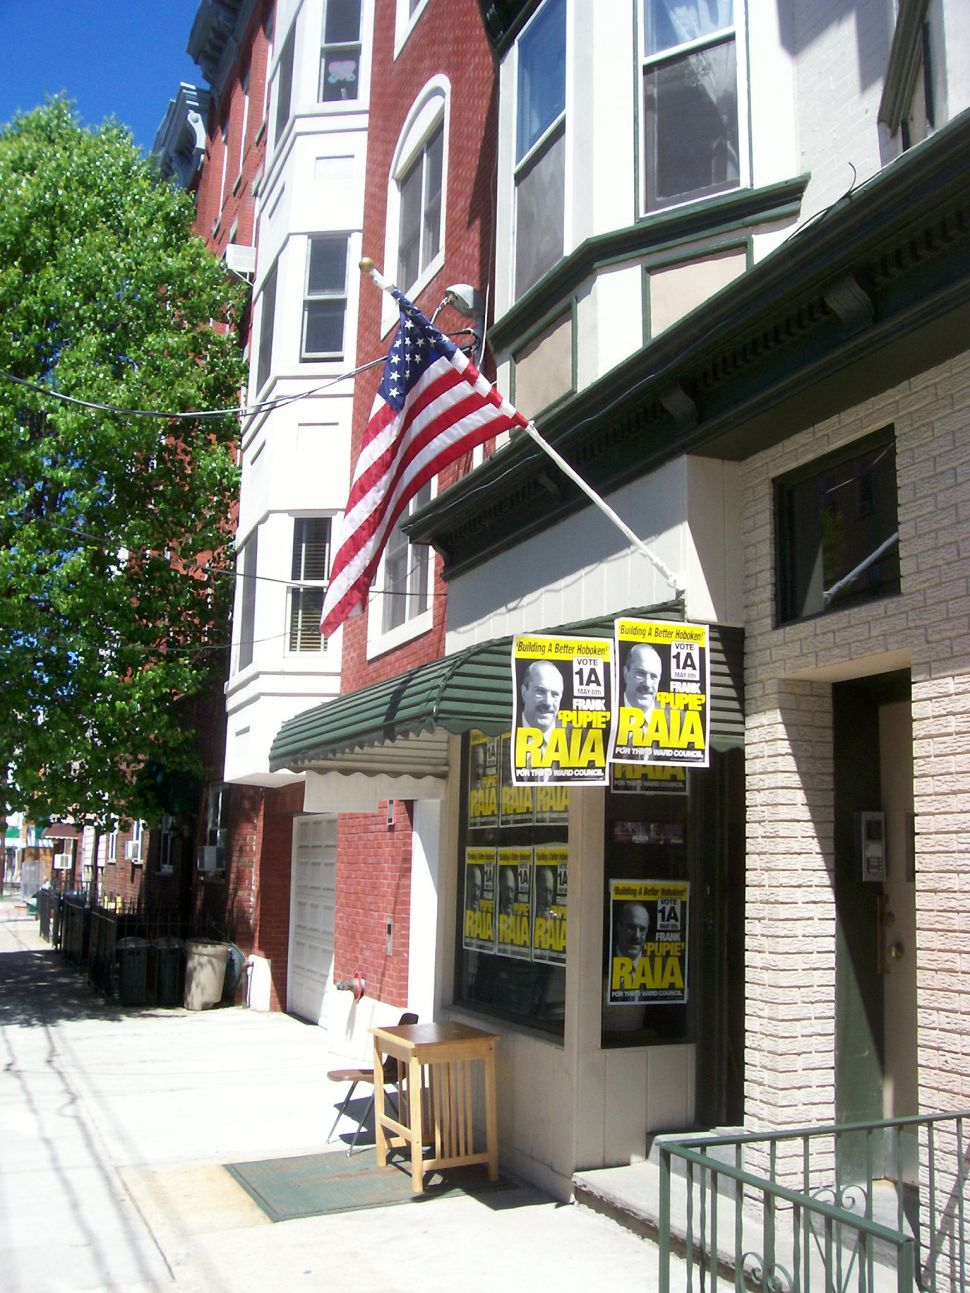 Russo wins in Hoboken… and maybe beyond